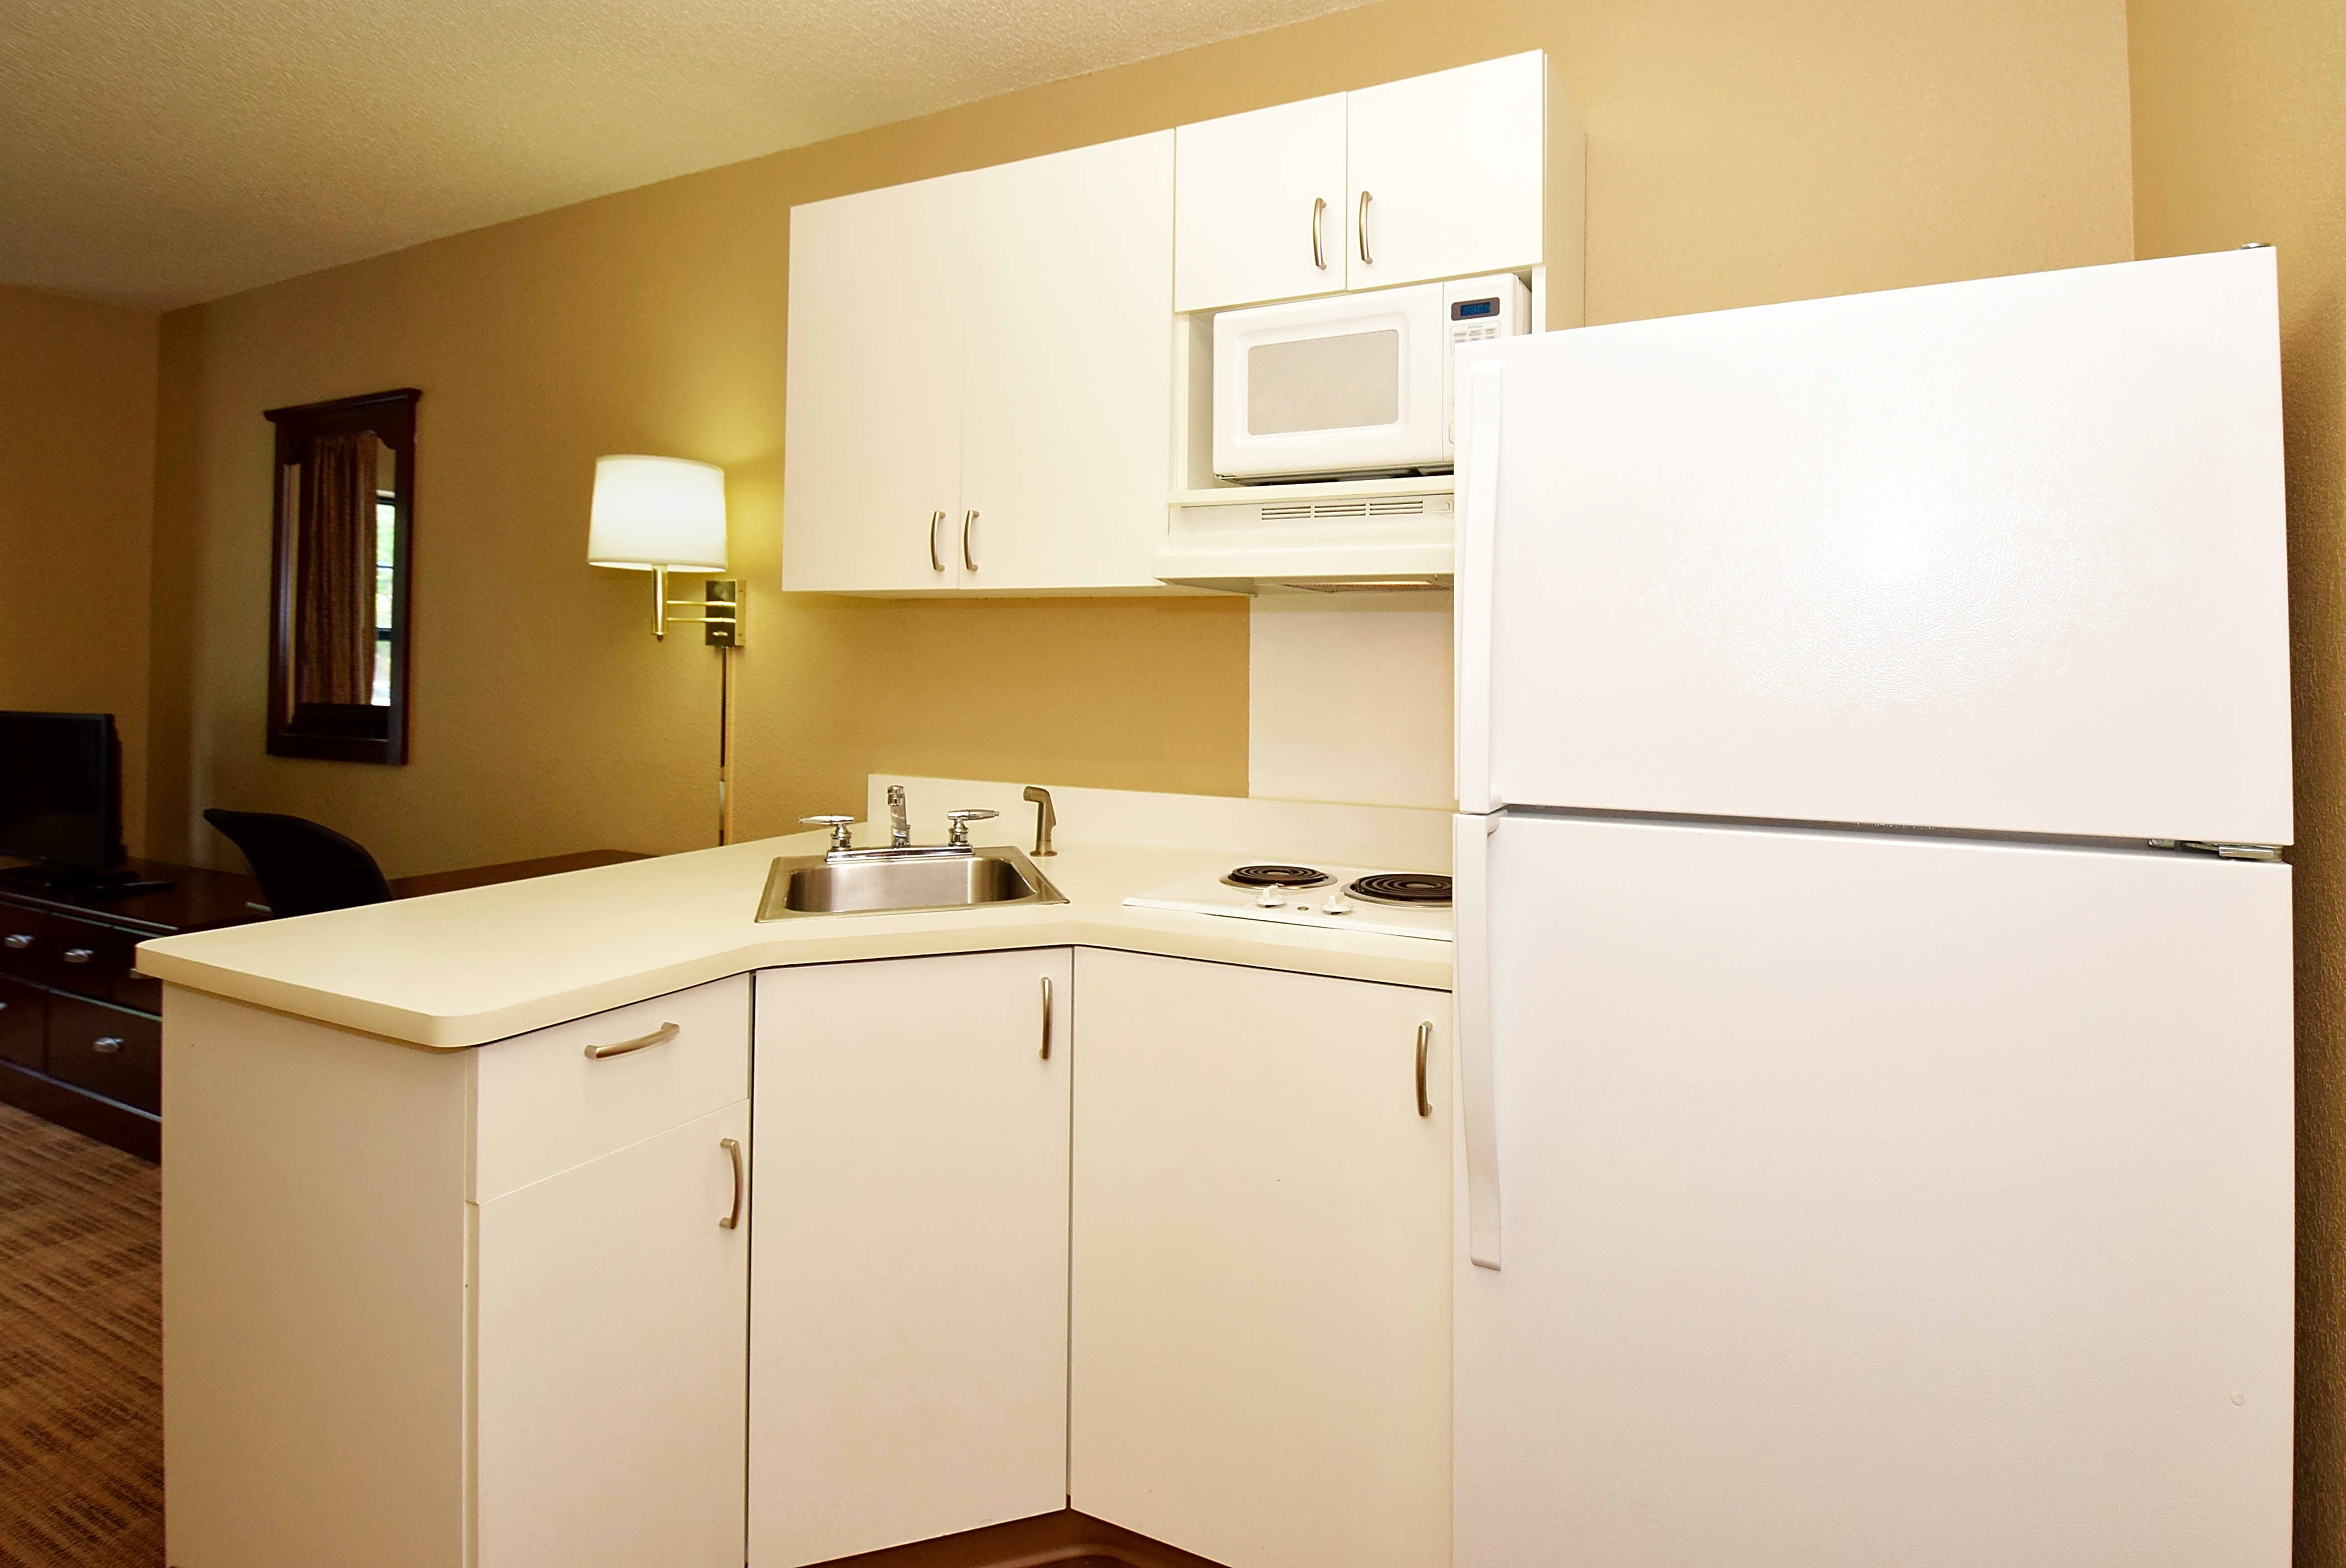 Housing Near UCSB Furnished Studio - Santa Barbara - Calle Real